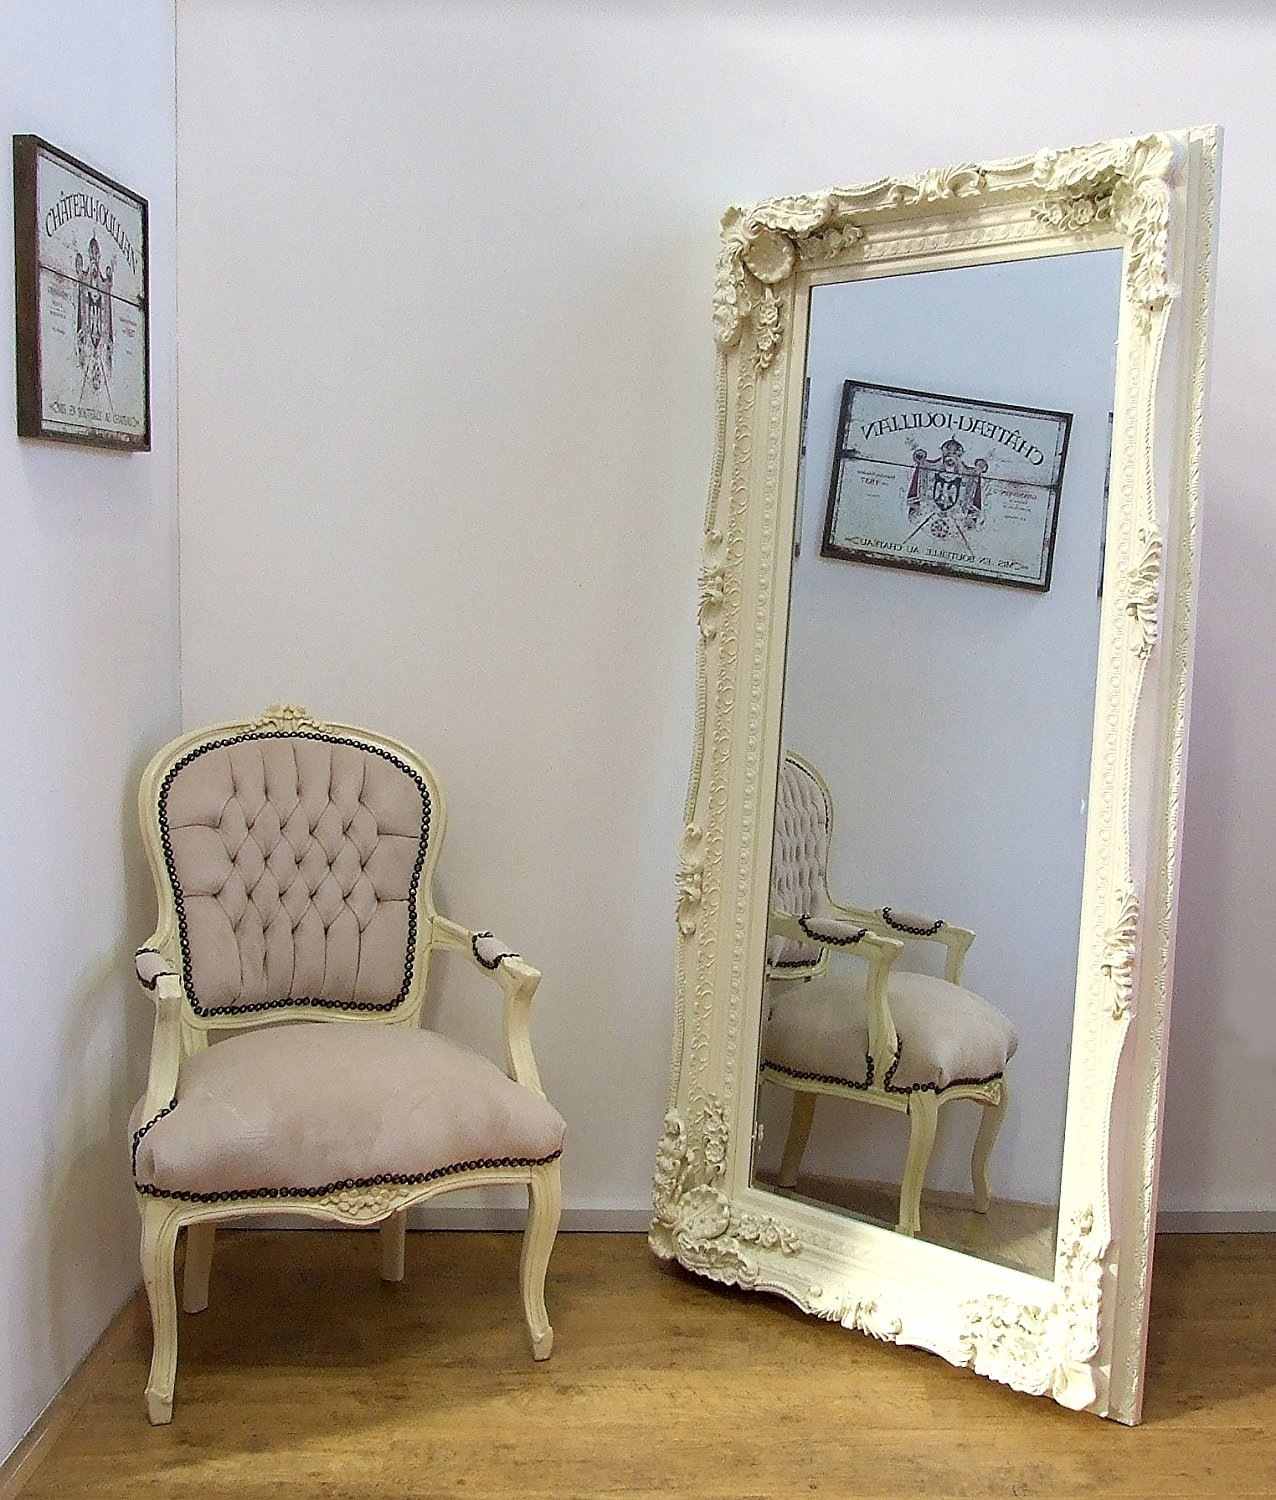 4ft6 X 2ft6 Large Ivory Ornate Shab Chic Cream Wall Mirror Within Cream Wall Mirror (Image 1 of 15)